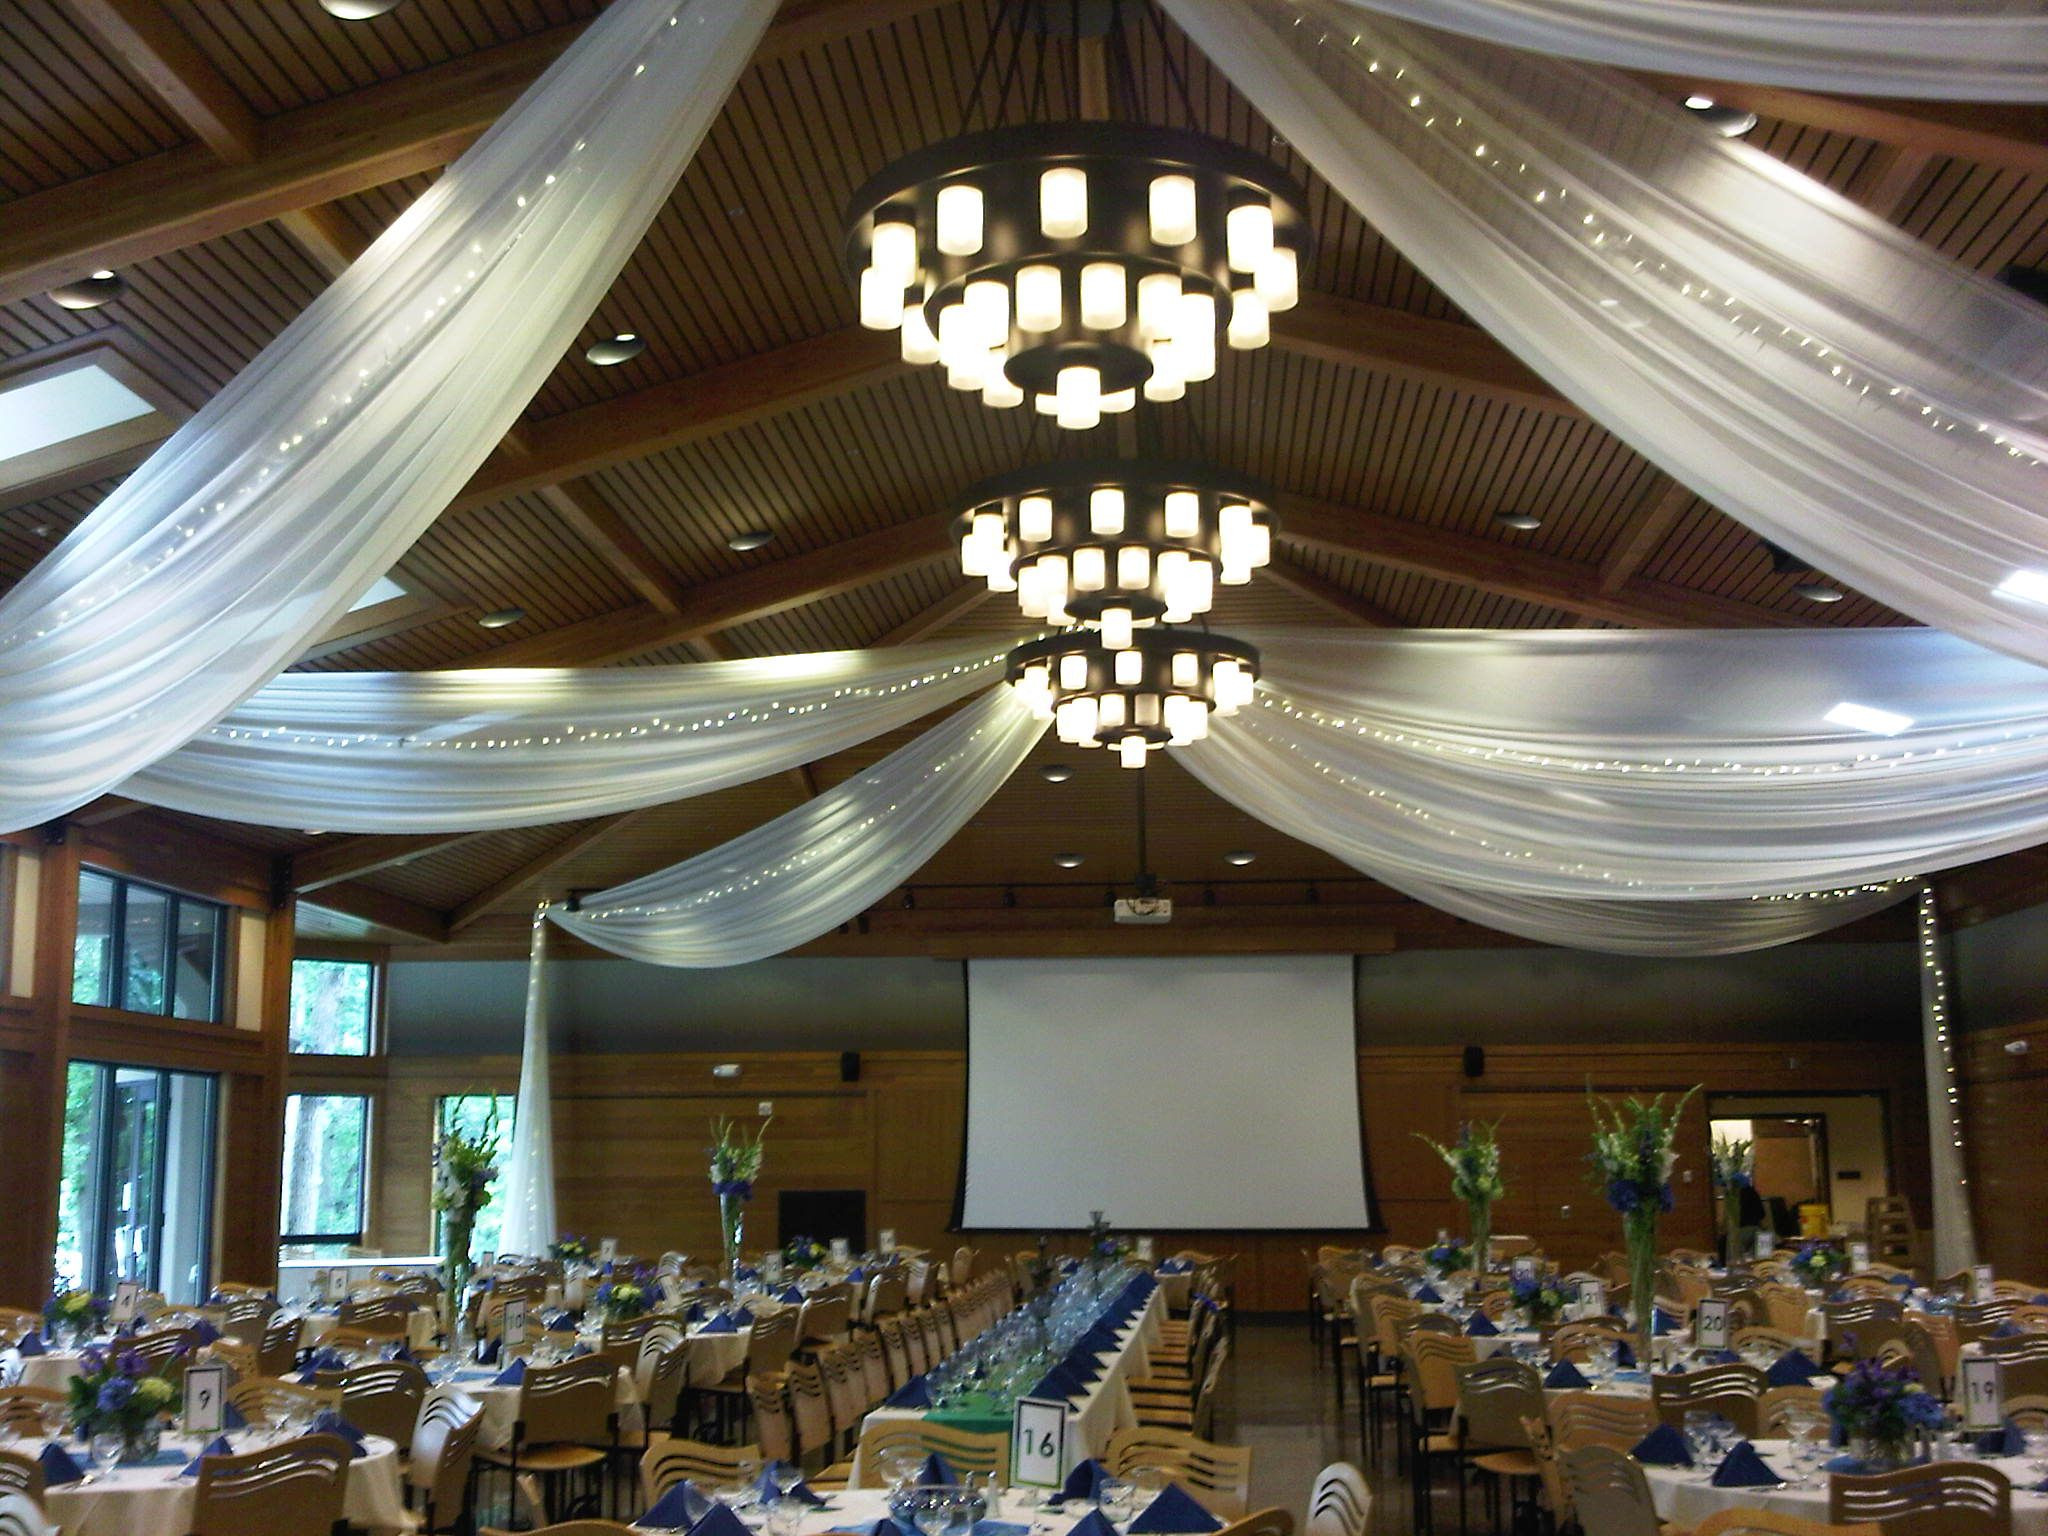 events drapes pipe florida how gobo rental hang lauderdale mood for event draping miami drape solaris to wall ceiling ft south